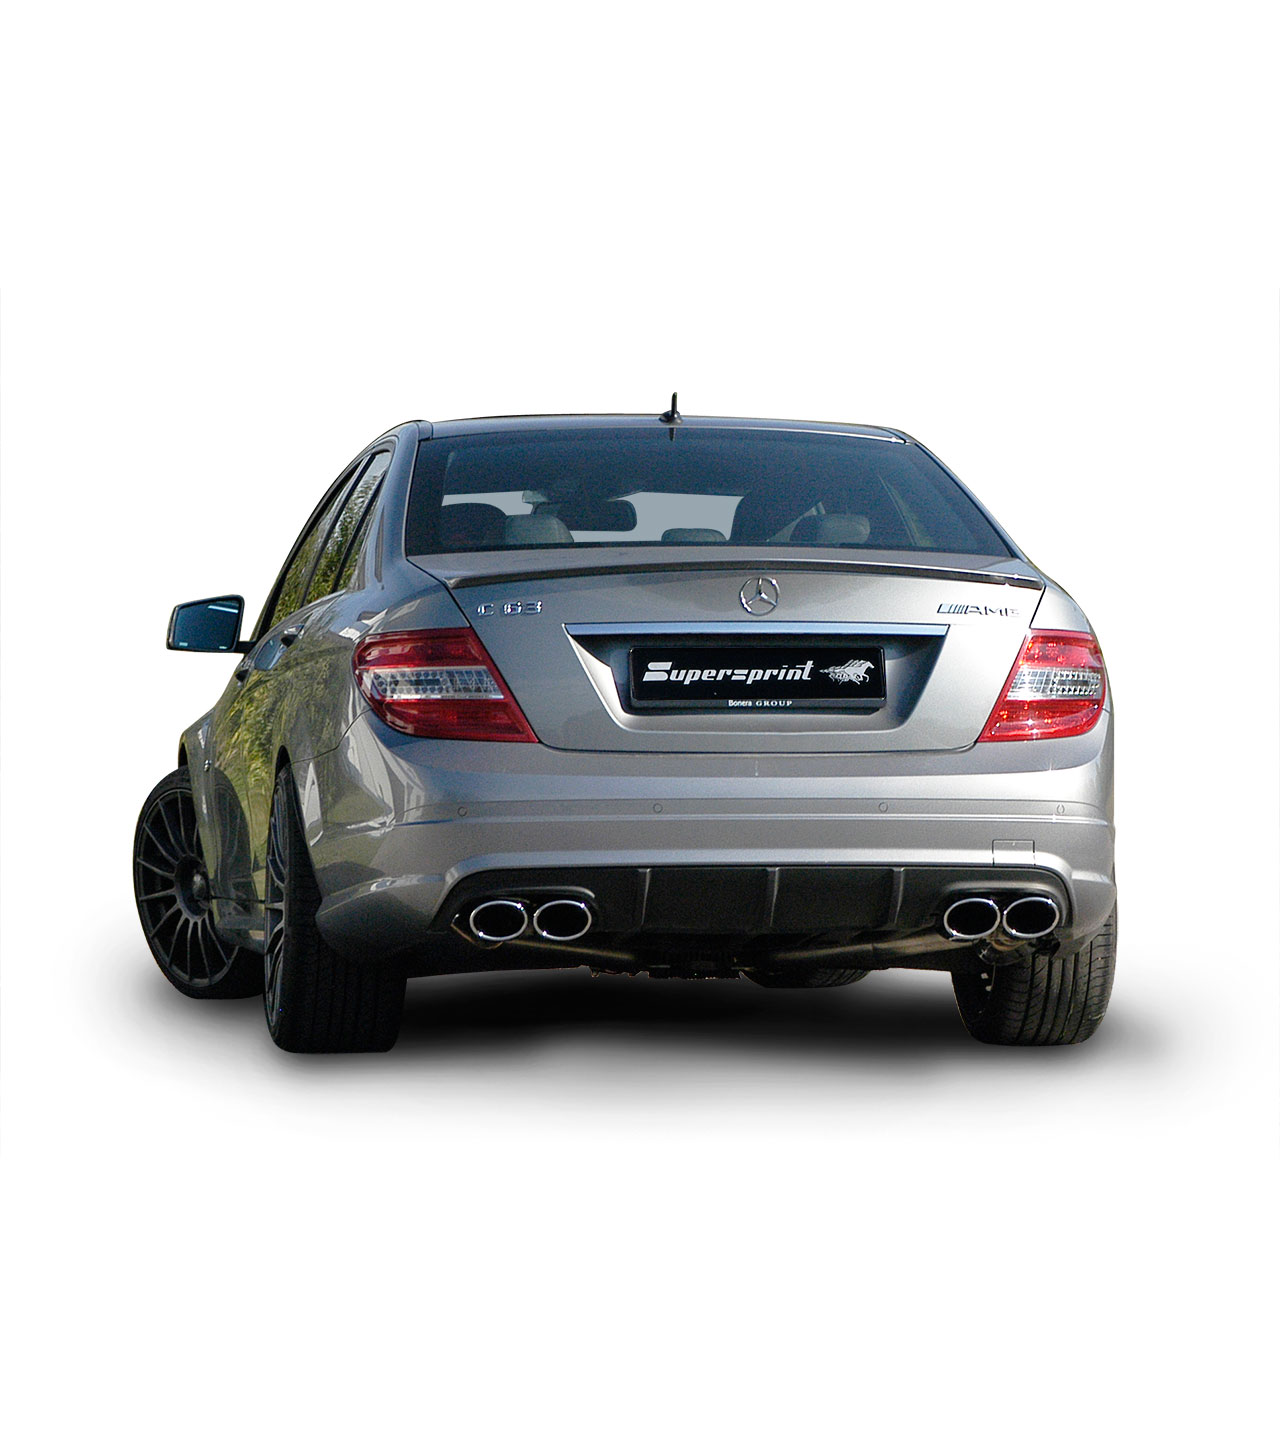 Performance sport exhaust for mercedes w204 c63 amg v8 456 for Mercedes benz c63 amg 2010